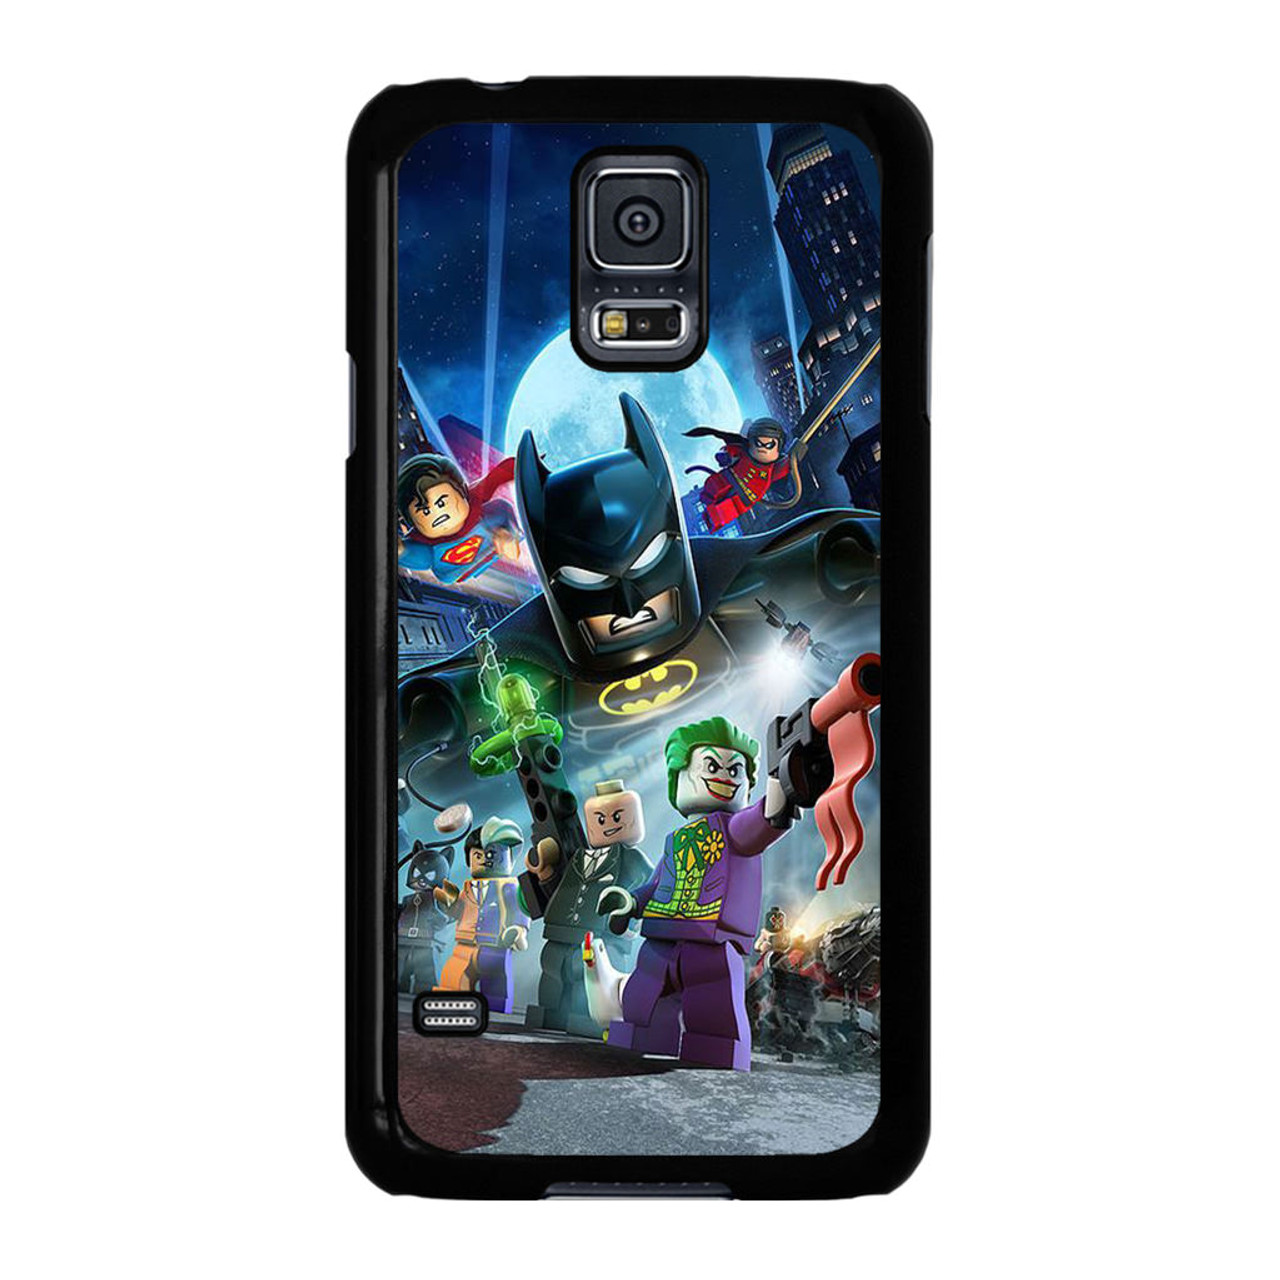 the latest d855a 756c1 Batman and DC Super Heroes Lego Samsung Galaxy S5 Case